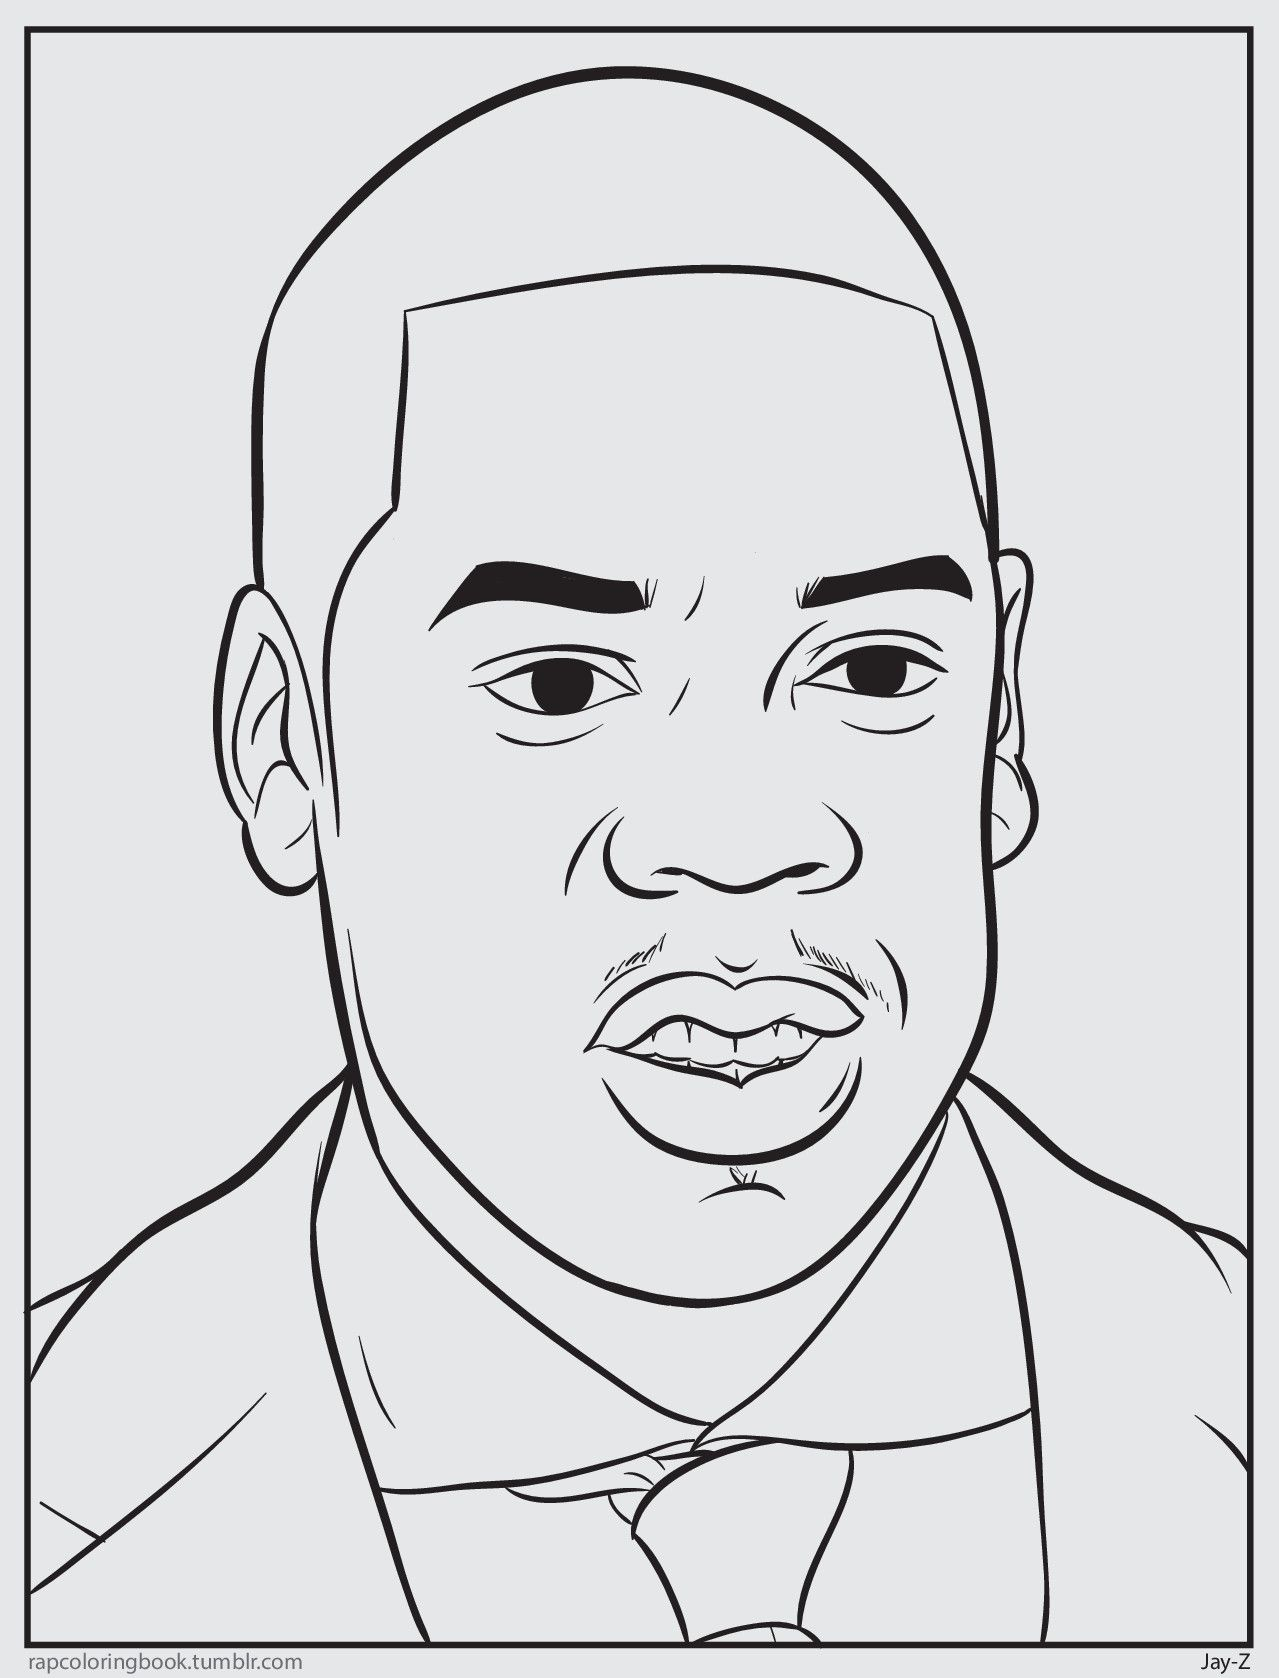 Pin By Ann Lee On Printables Coloring Pages Art Drawings Sketches Simple Celebrity Drawings